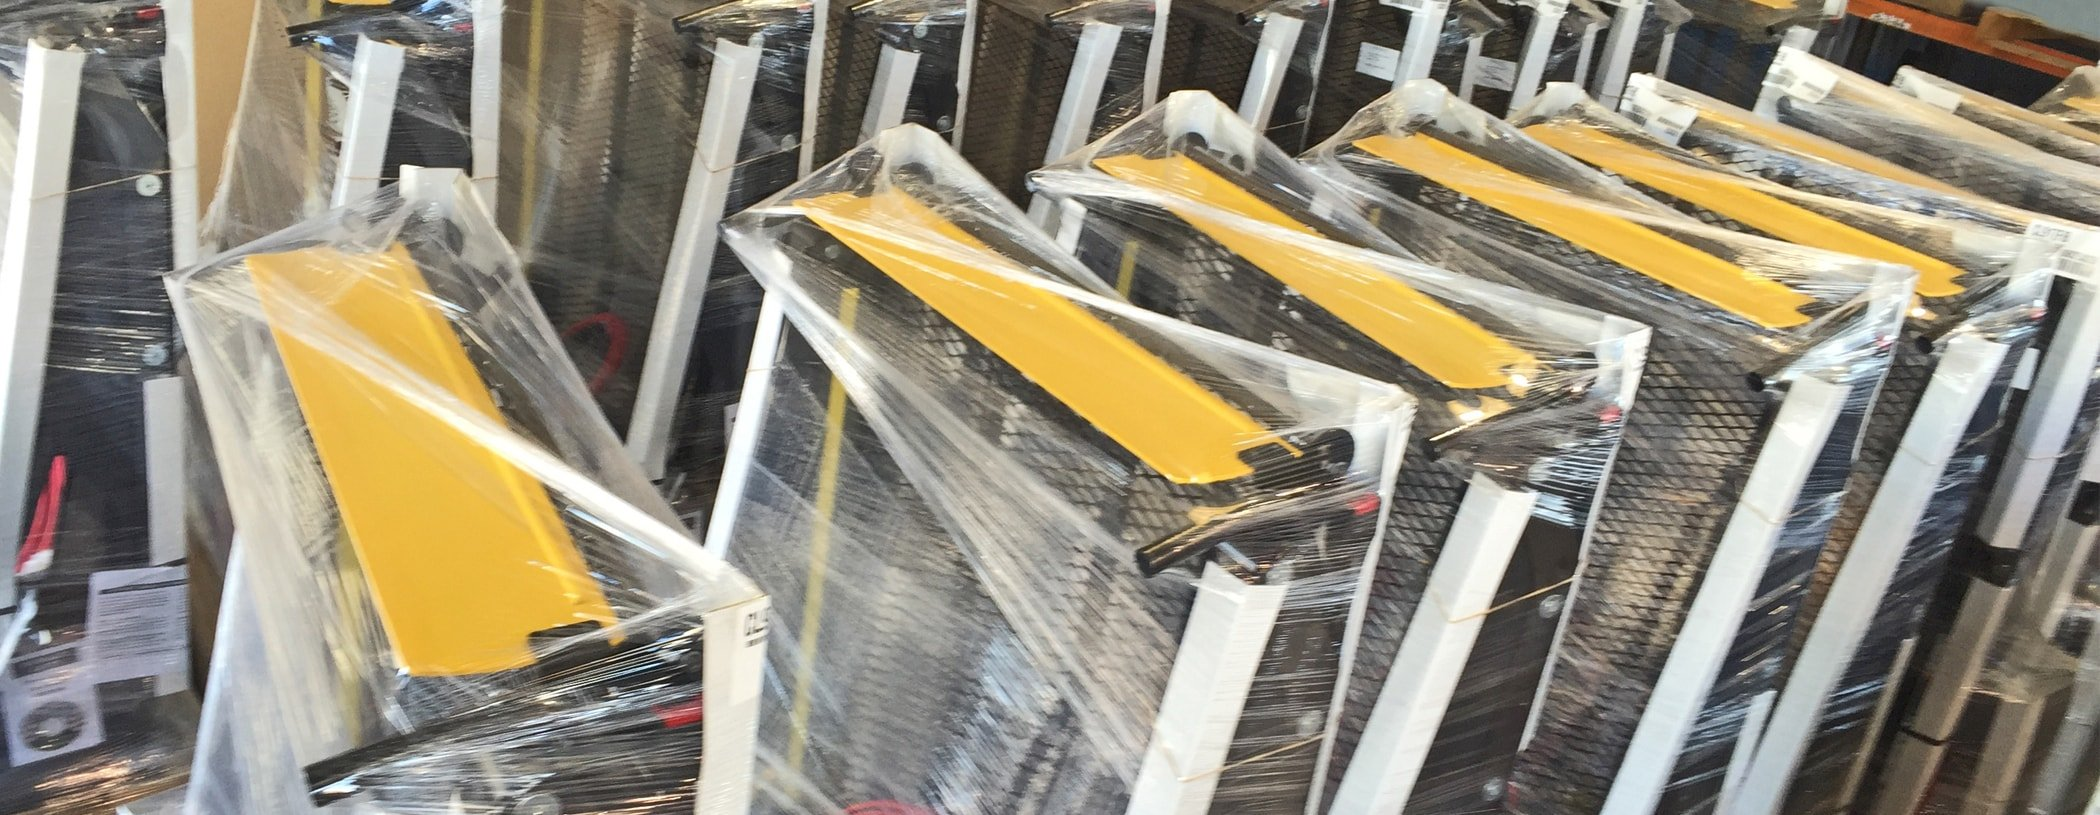 Lifts In stock